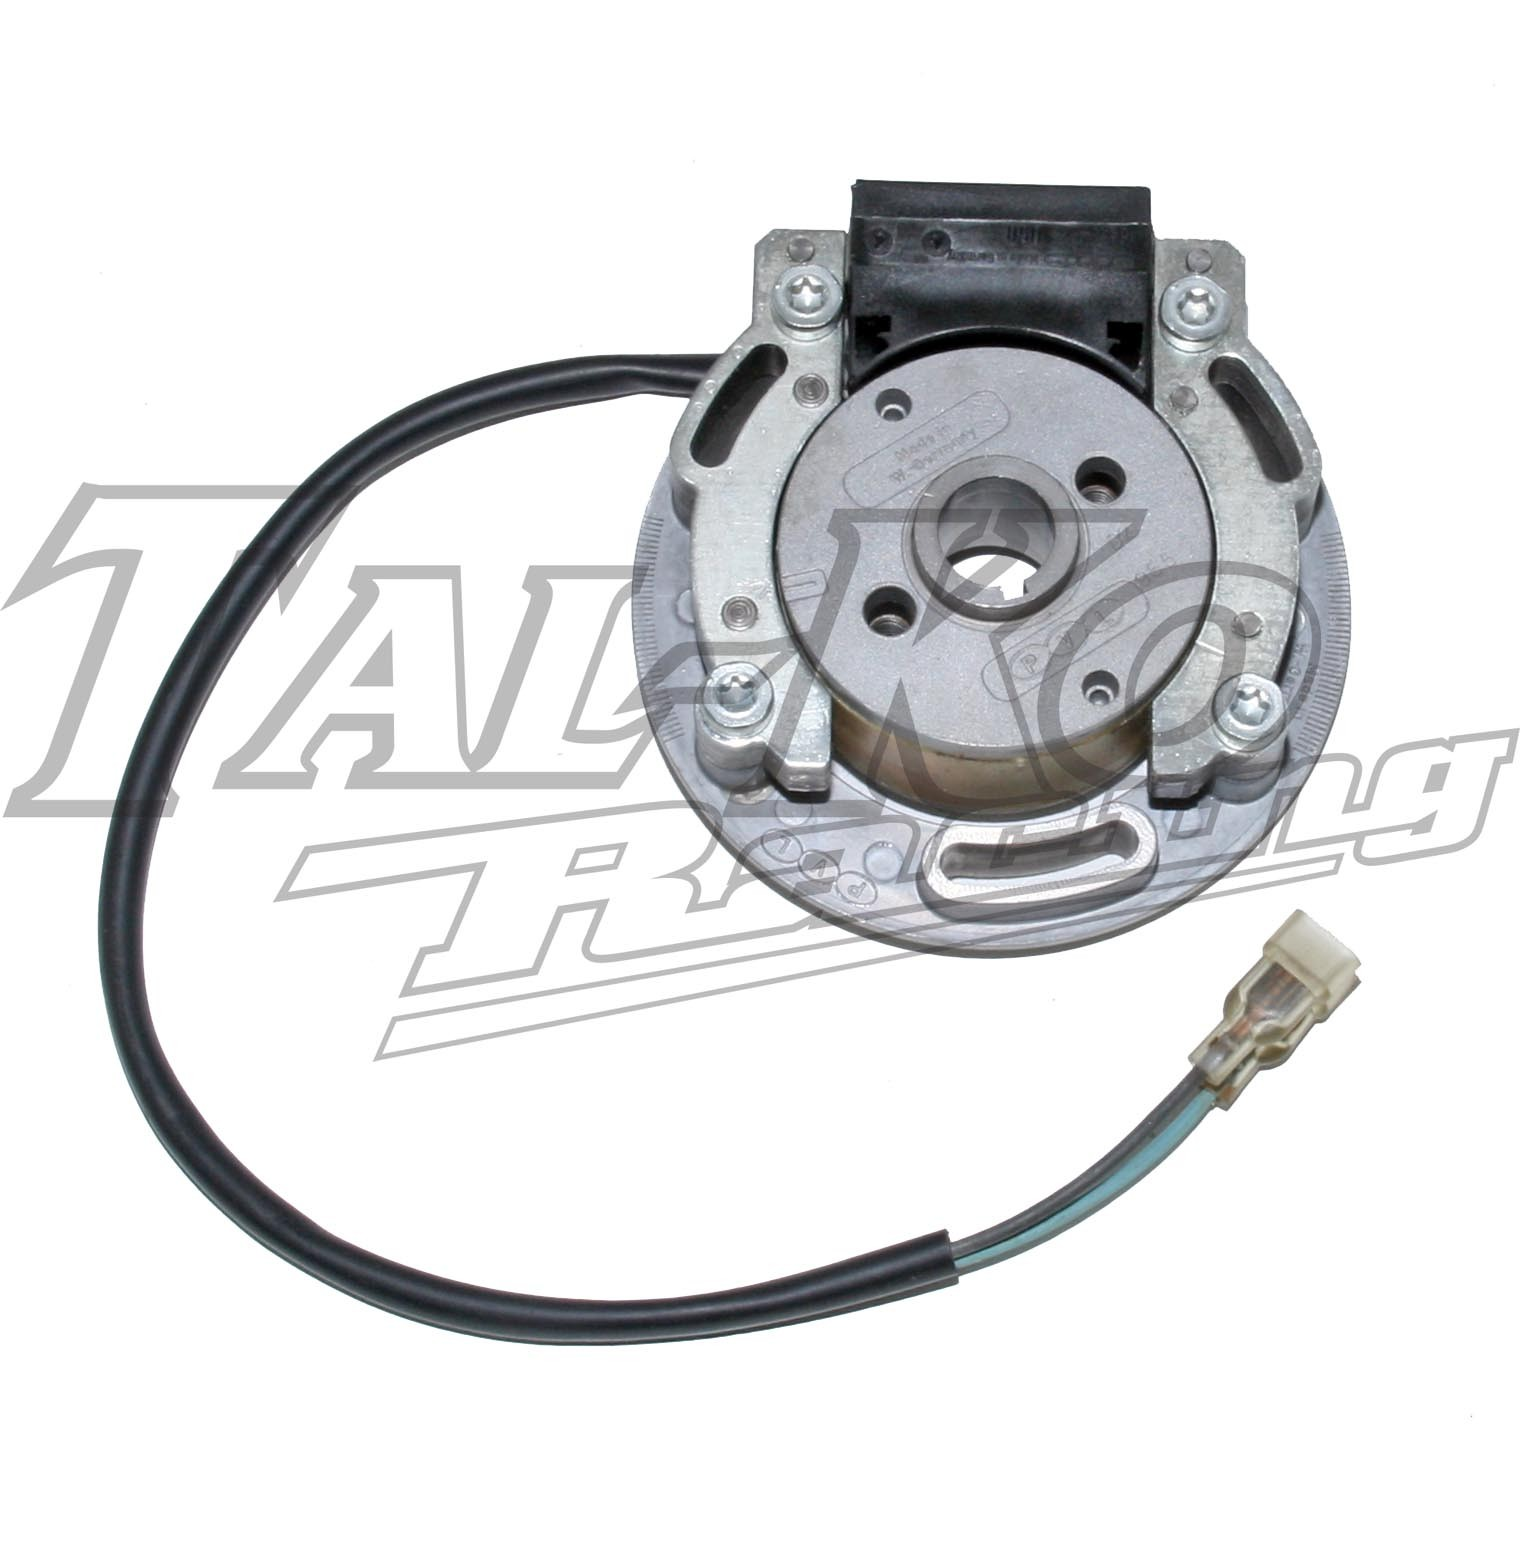 TKM KA100 PVL IGNITION STATOR & ROTOR